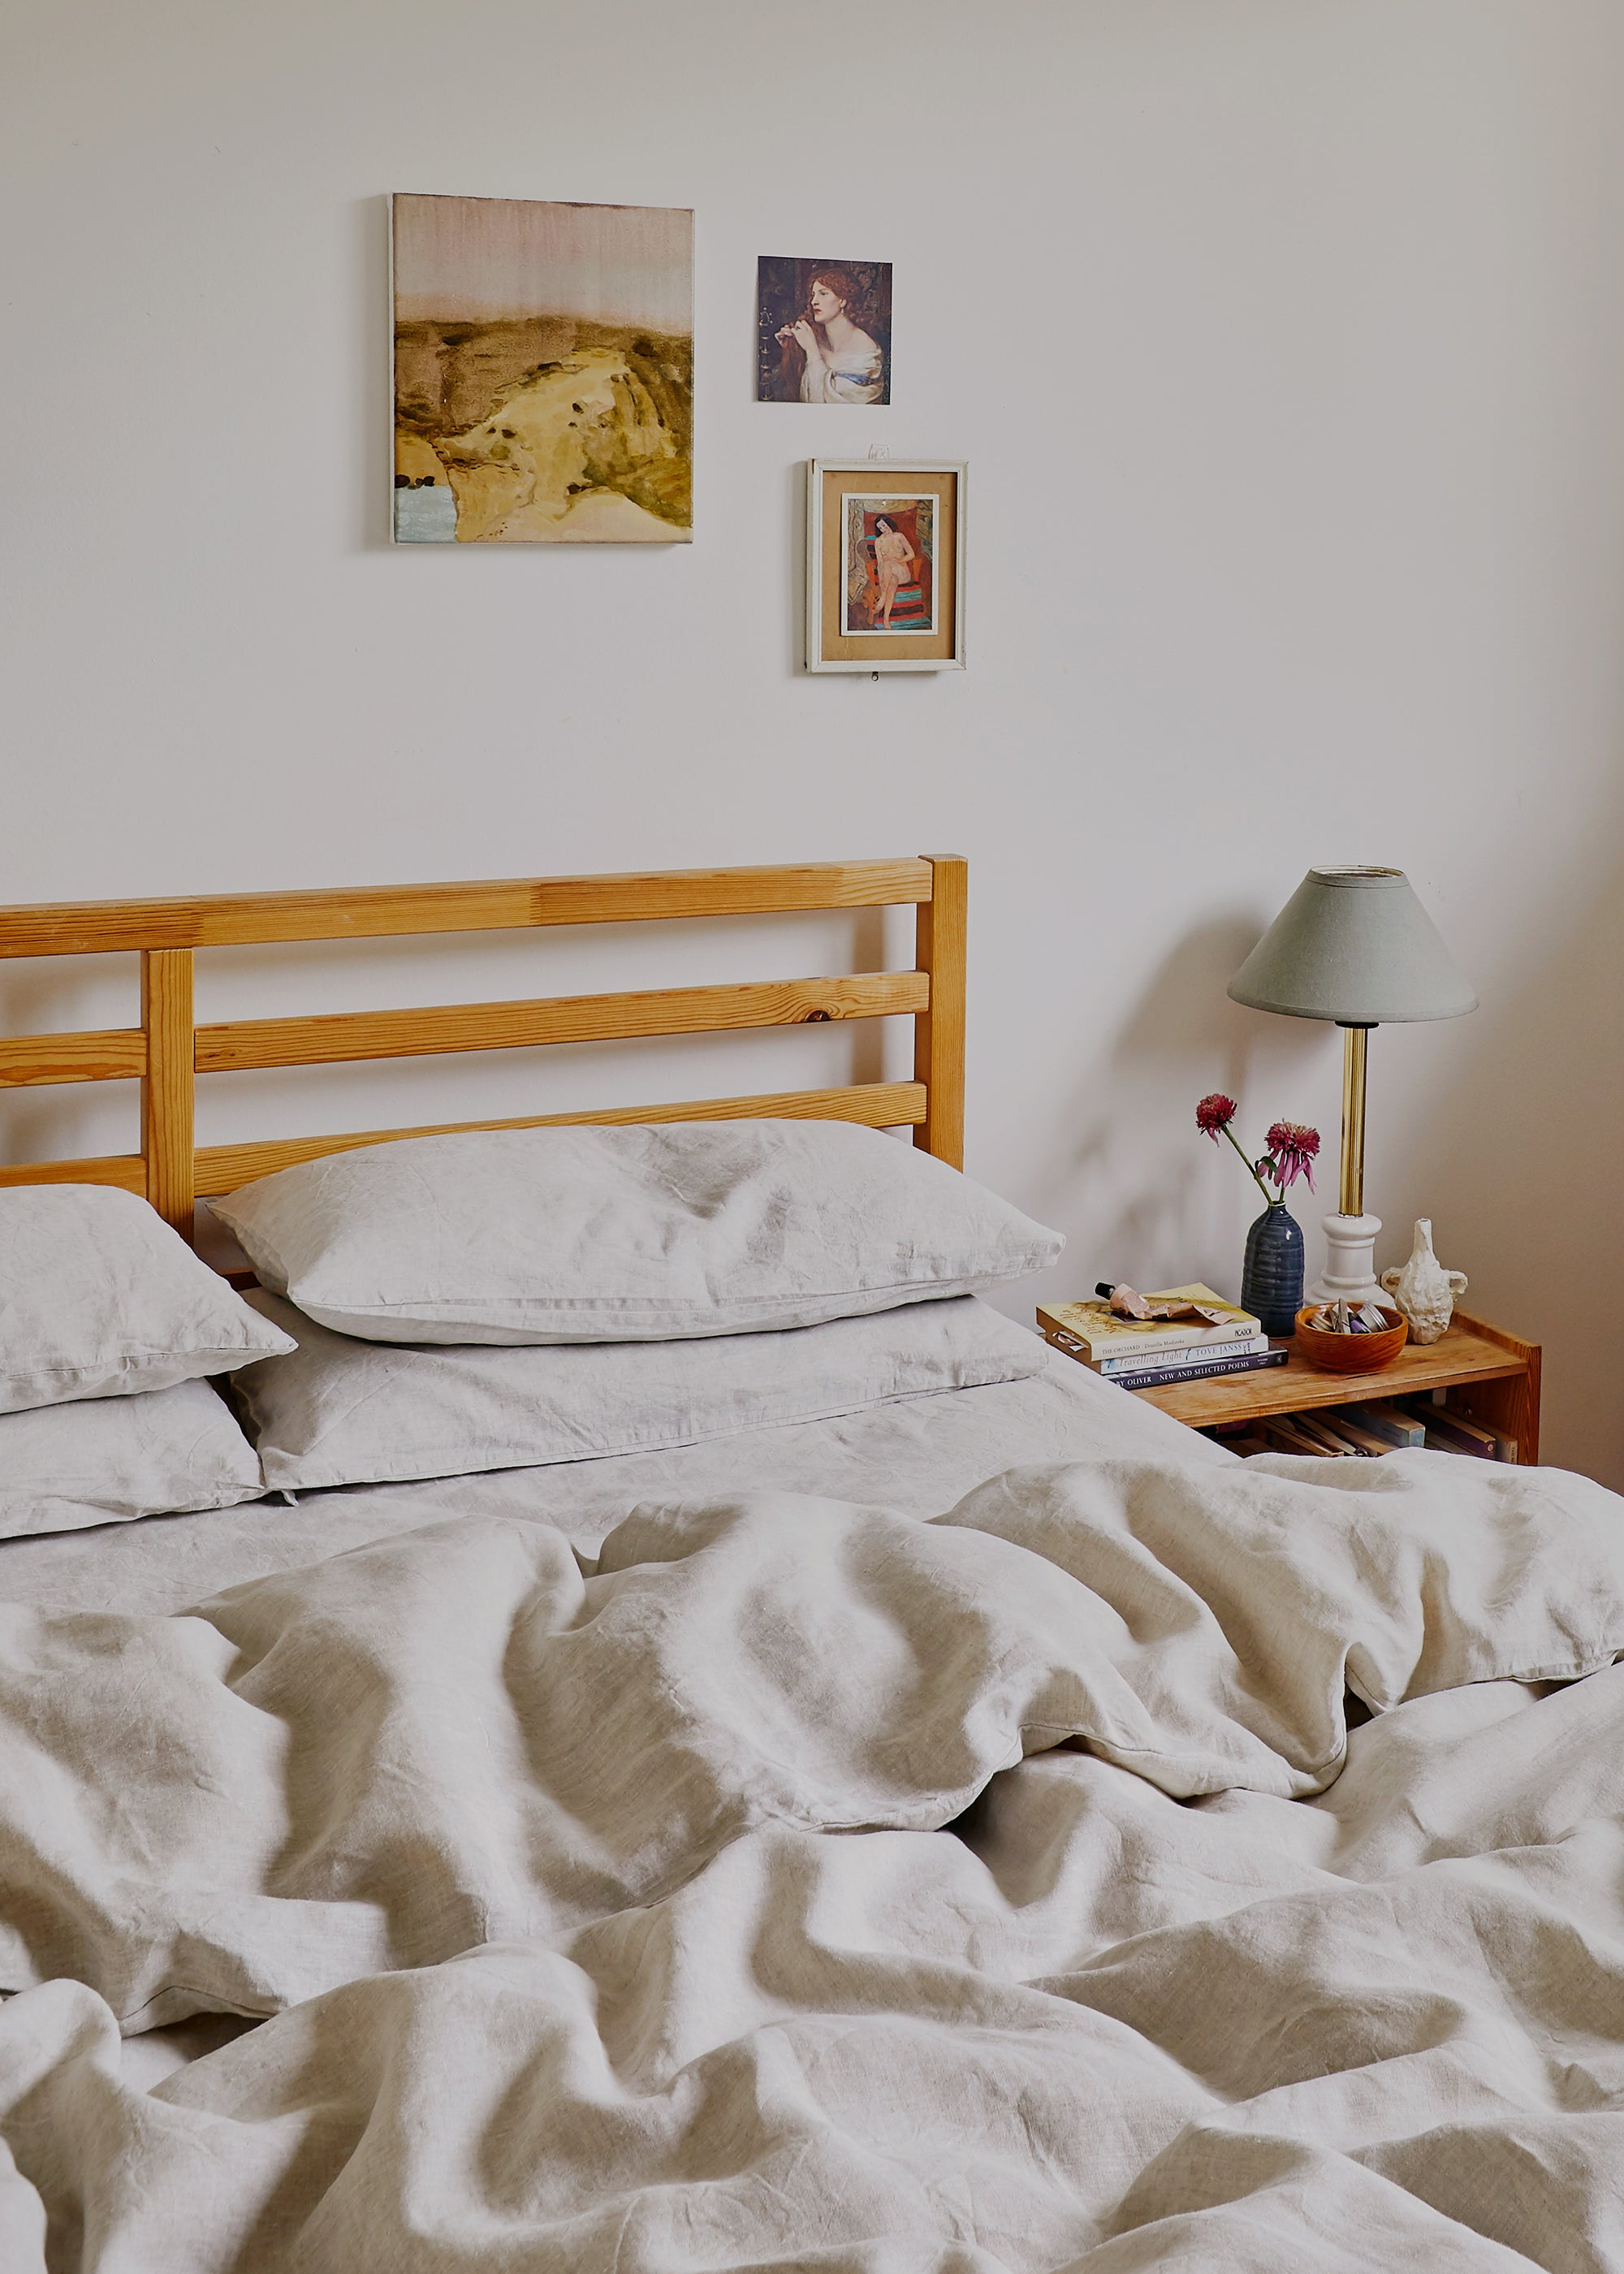 How To Style Your Bedroom For Good Luck According To Feng Shui Bed Threads